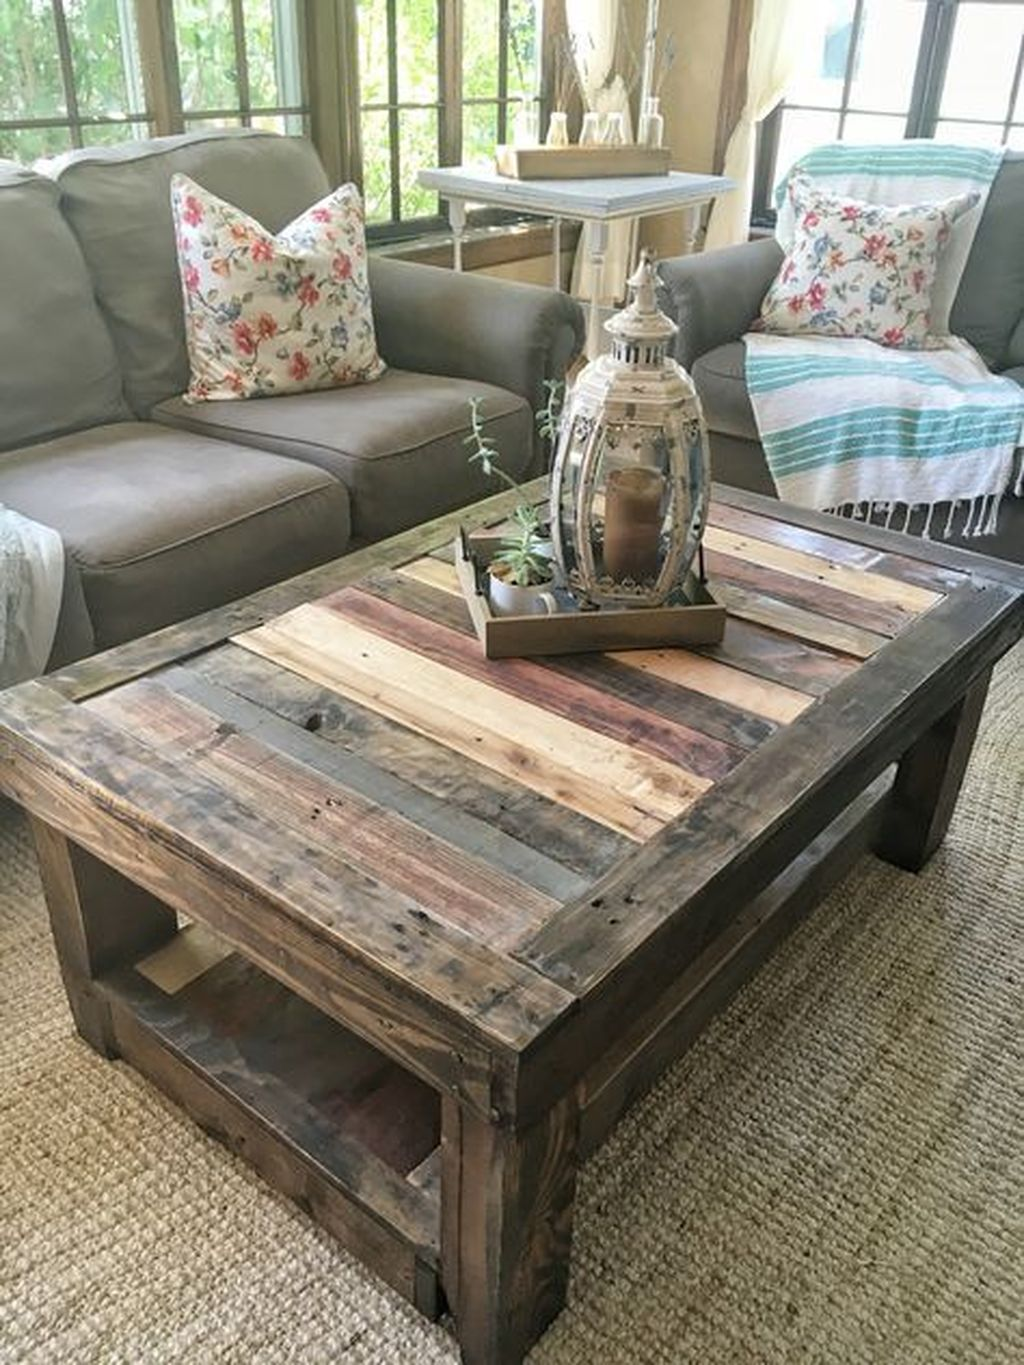 Gorgeous DIY Coffee Table Design Ideas 08